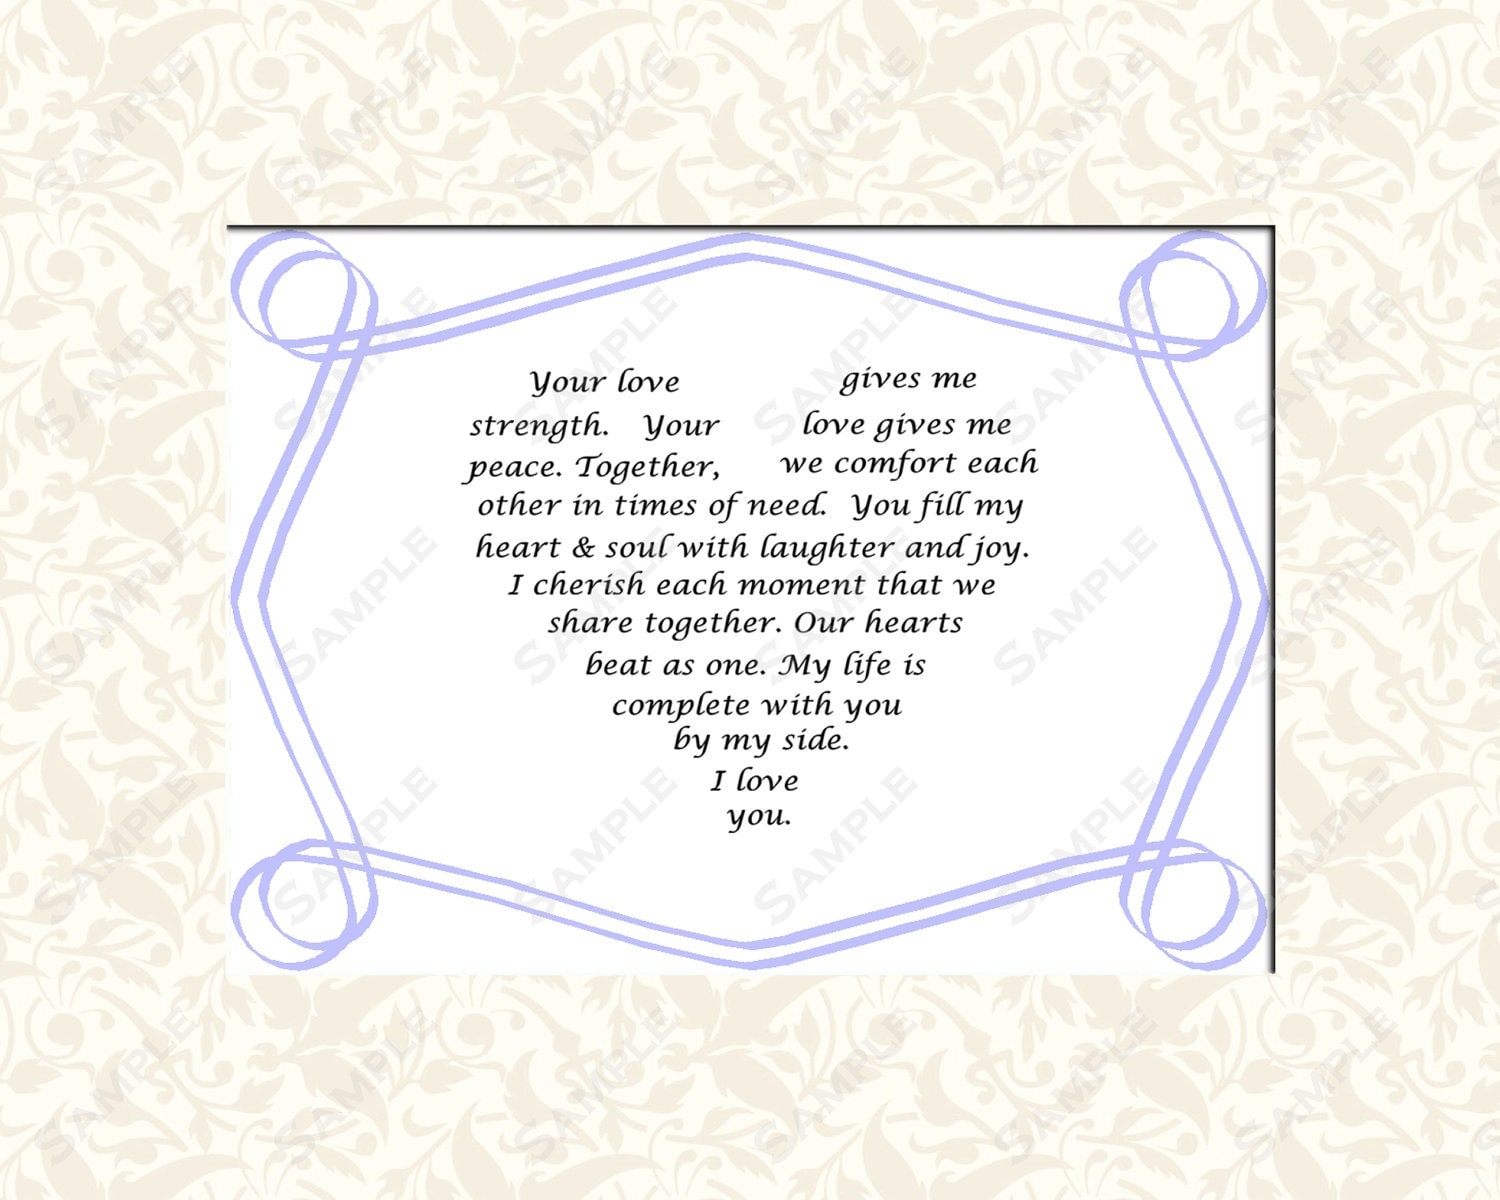 Items Similar To Love Poem Bridal Gift With Heart Shaped